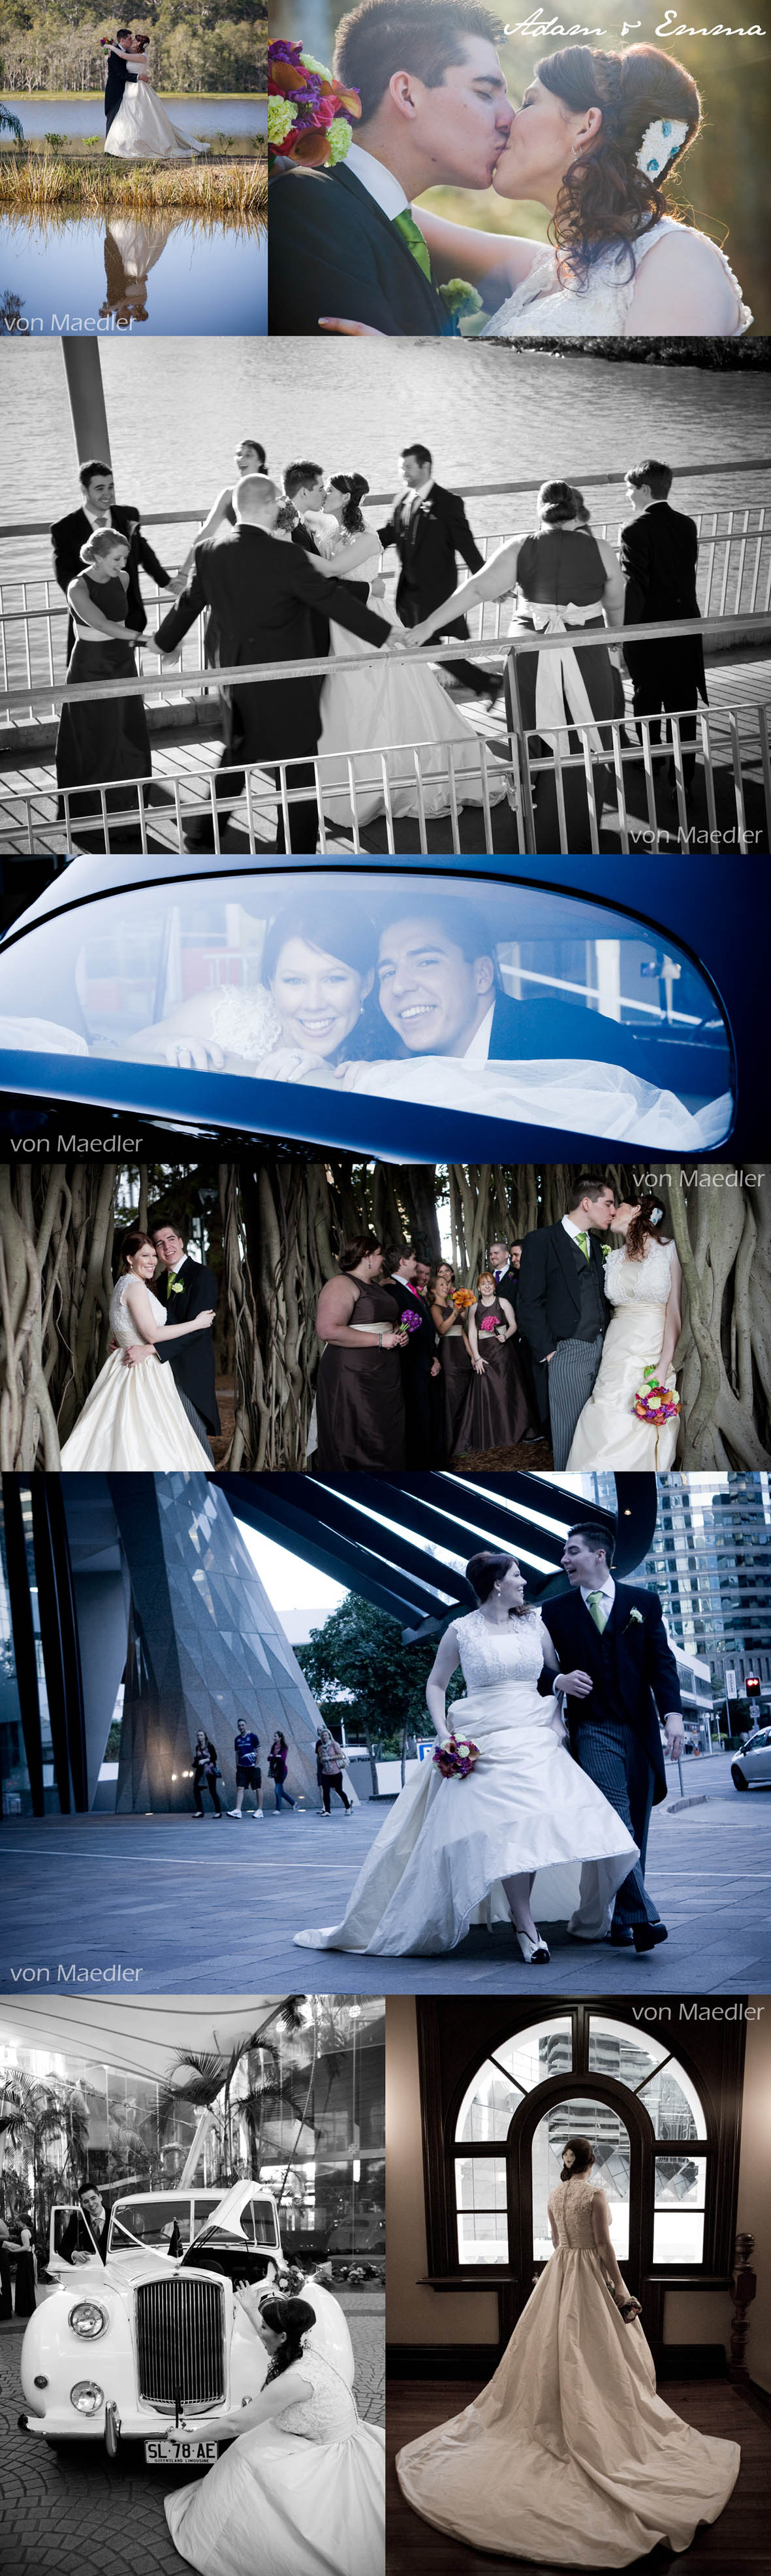 Queensland Wedding Photography